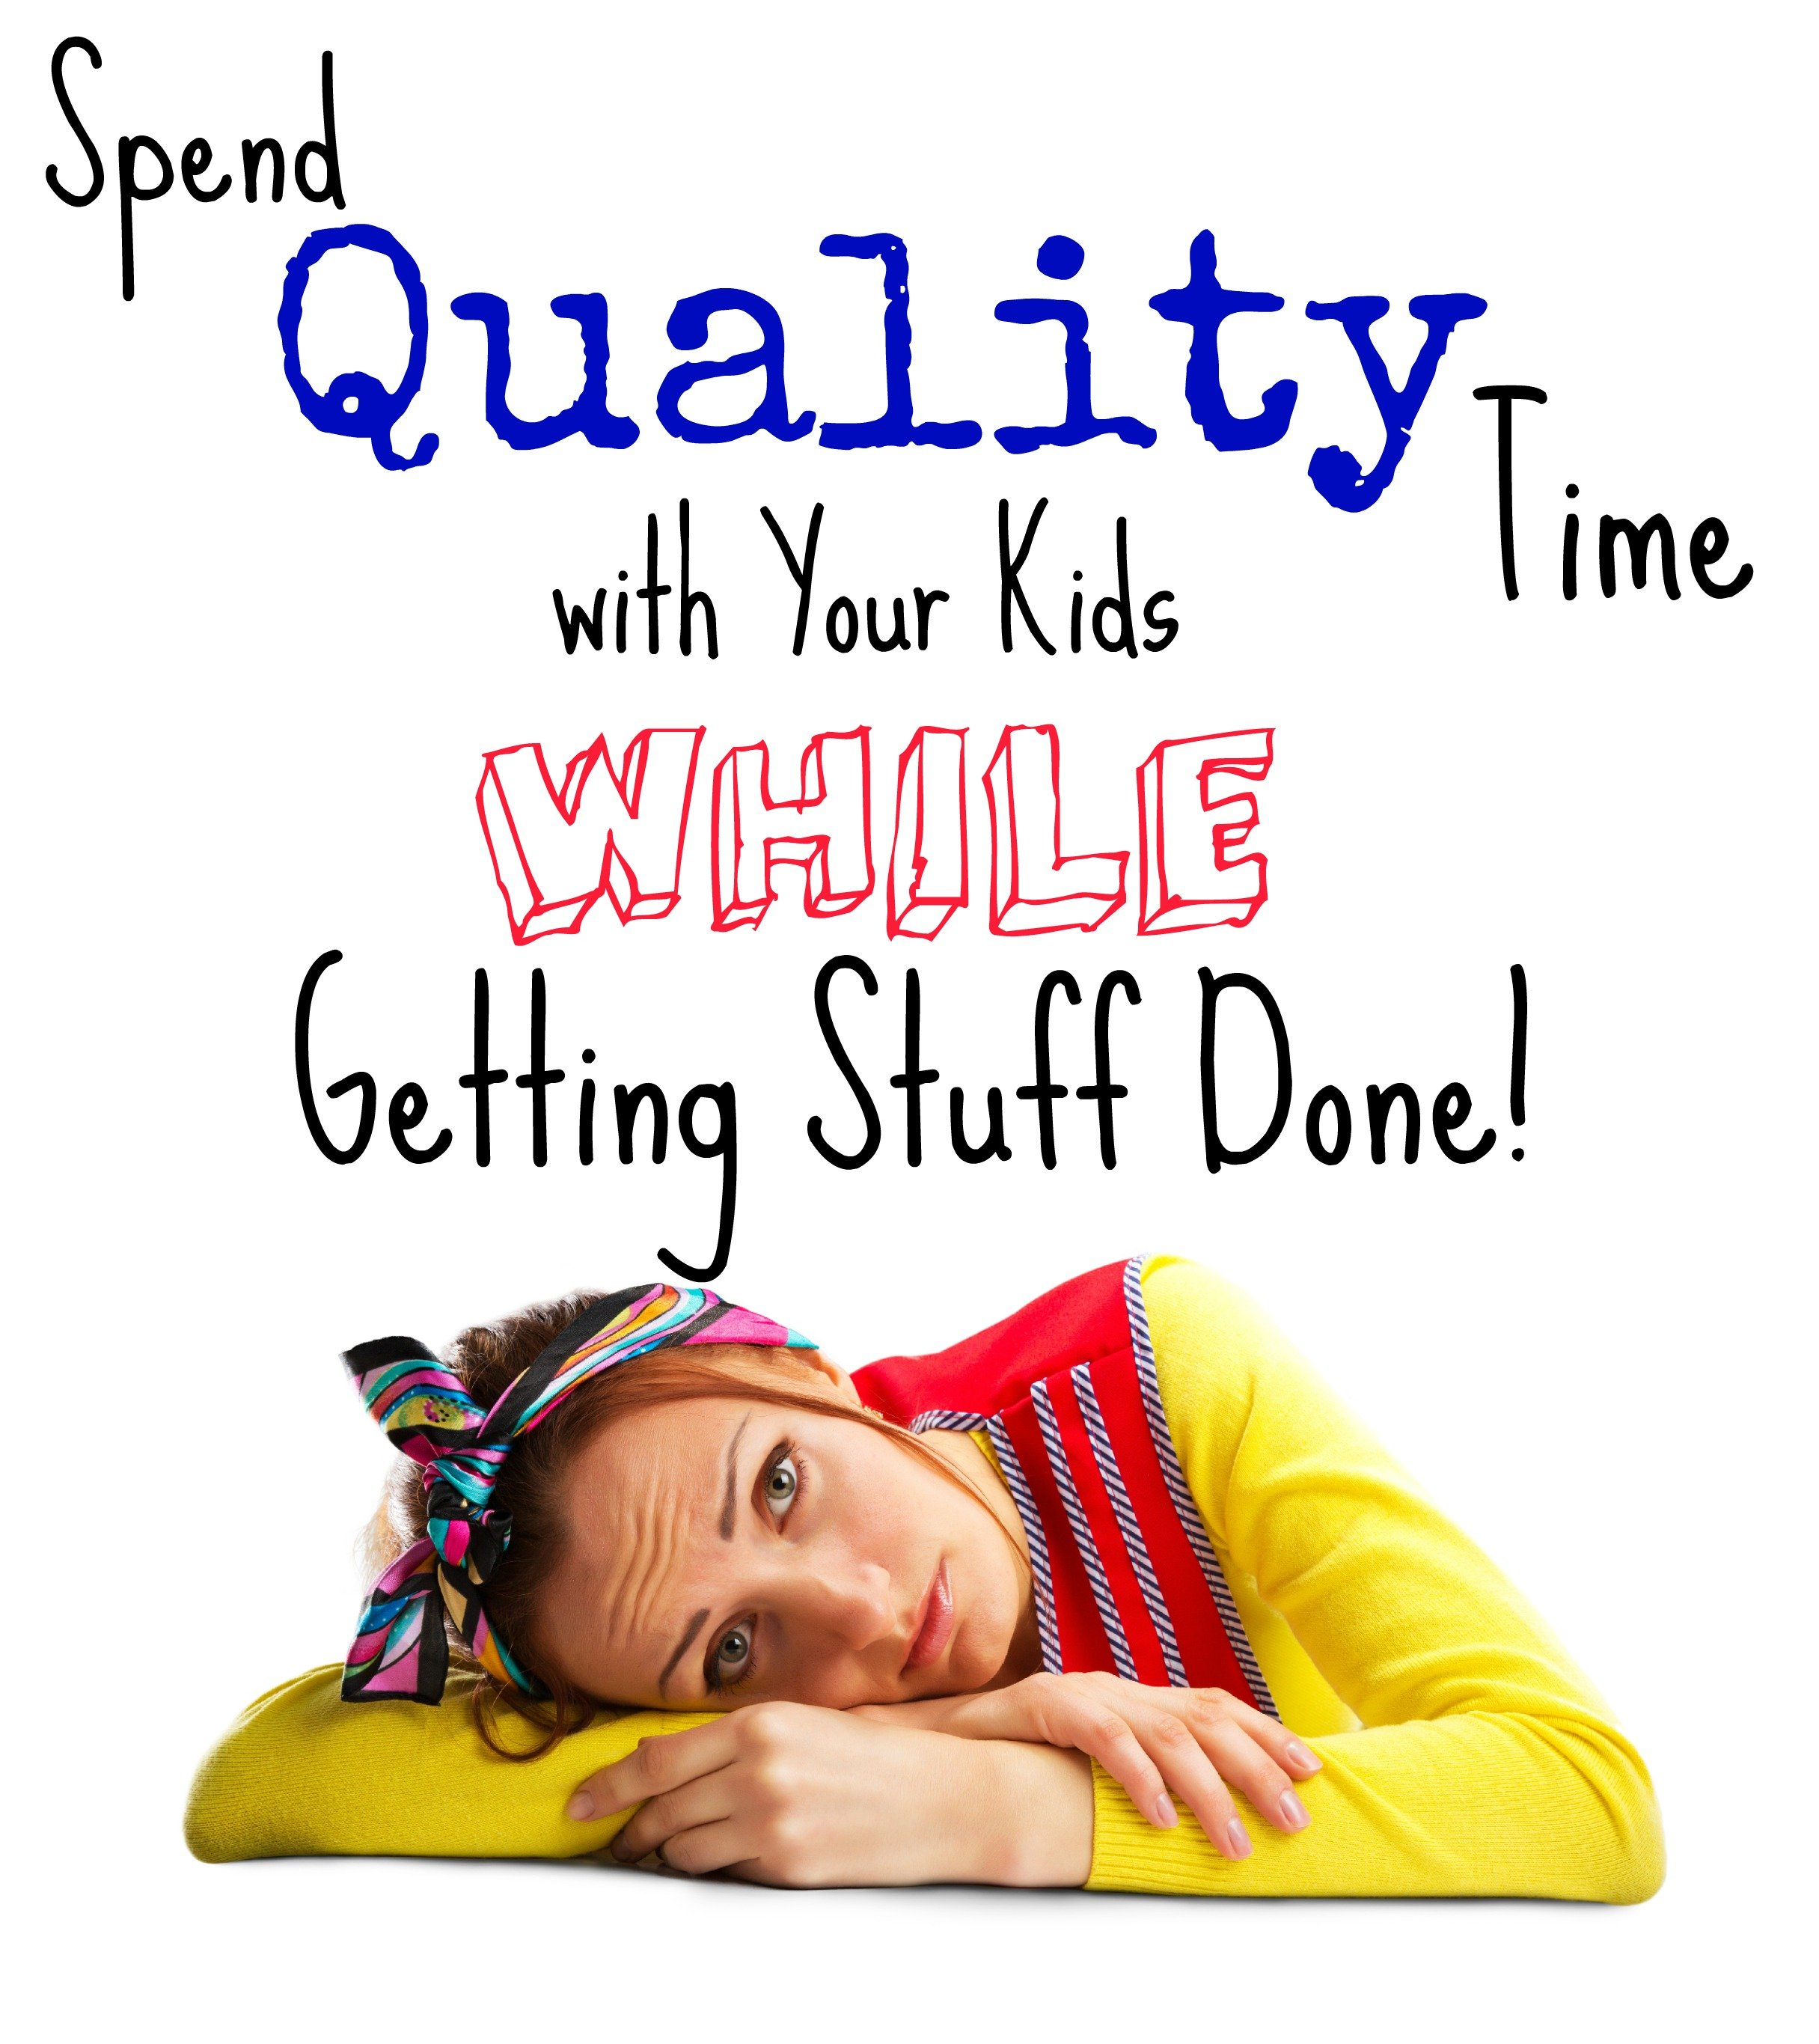 Spend Time With Your Wife Quotes: Spending Quality Time Quotes. QuotesGram